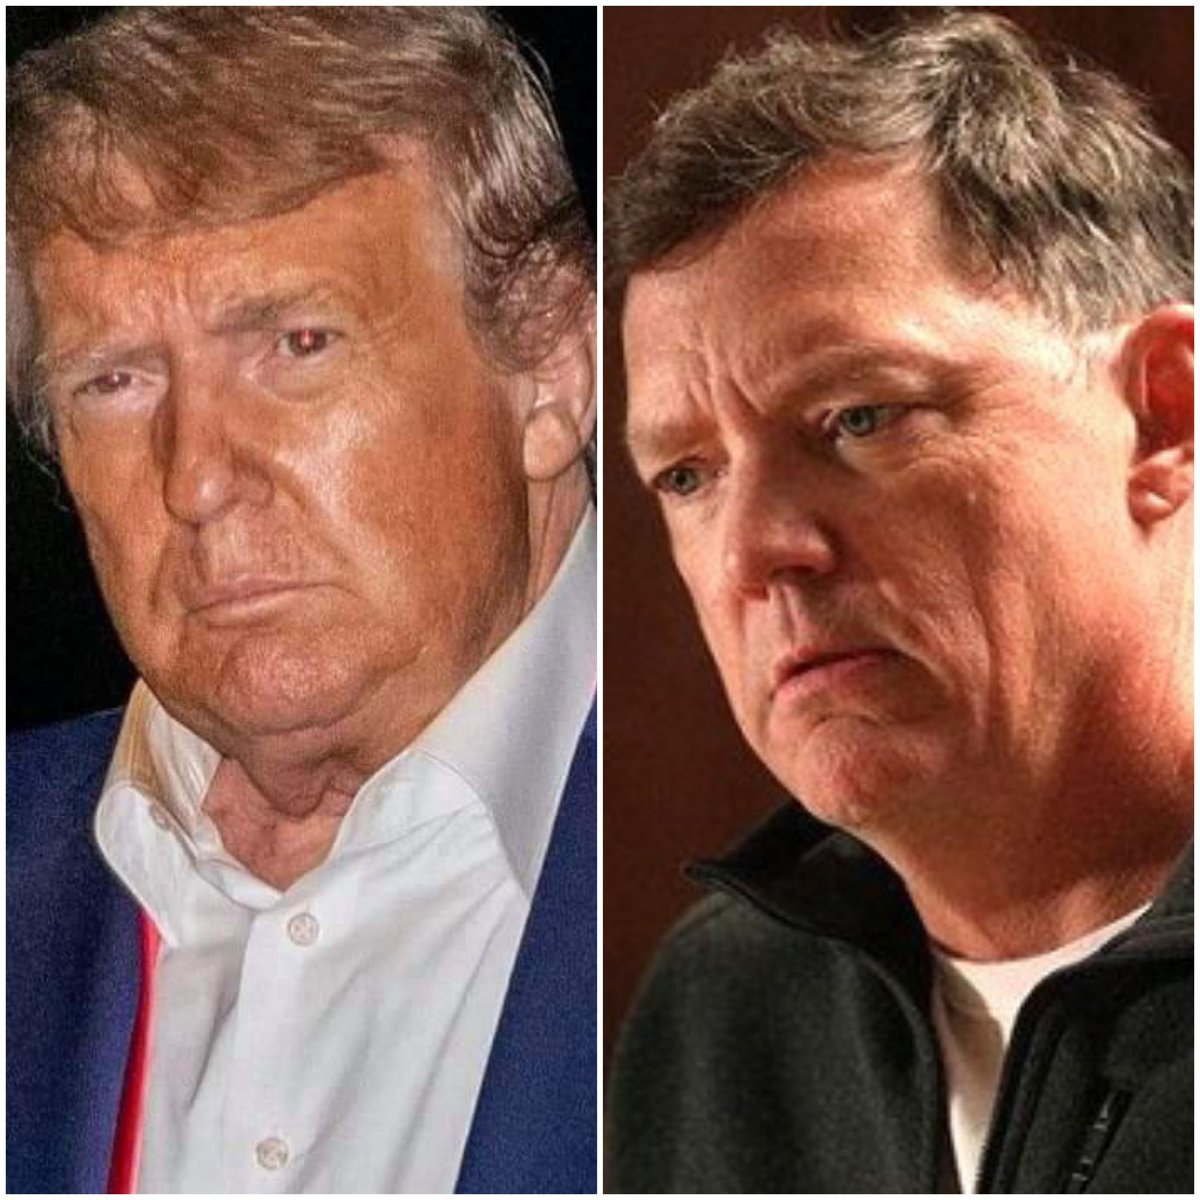 There will be many movies about the Trump regime. @MatthewLillard better get one of them.